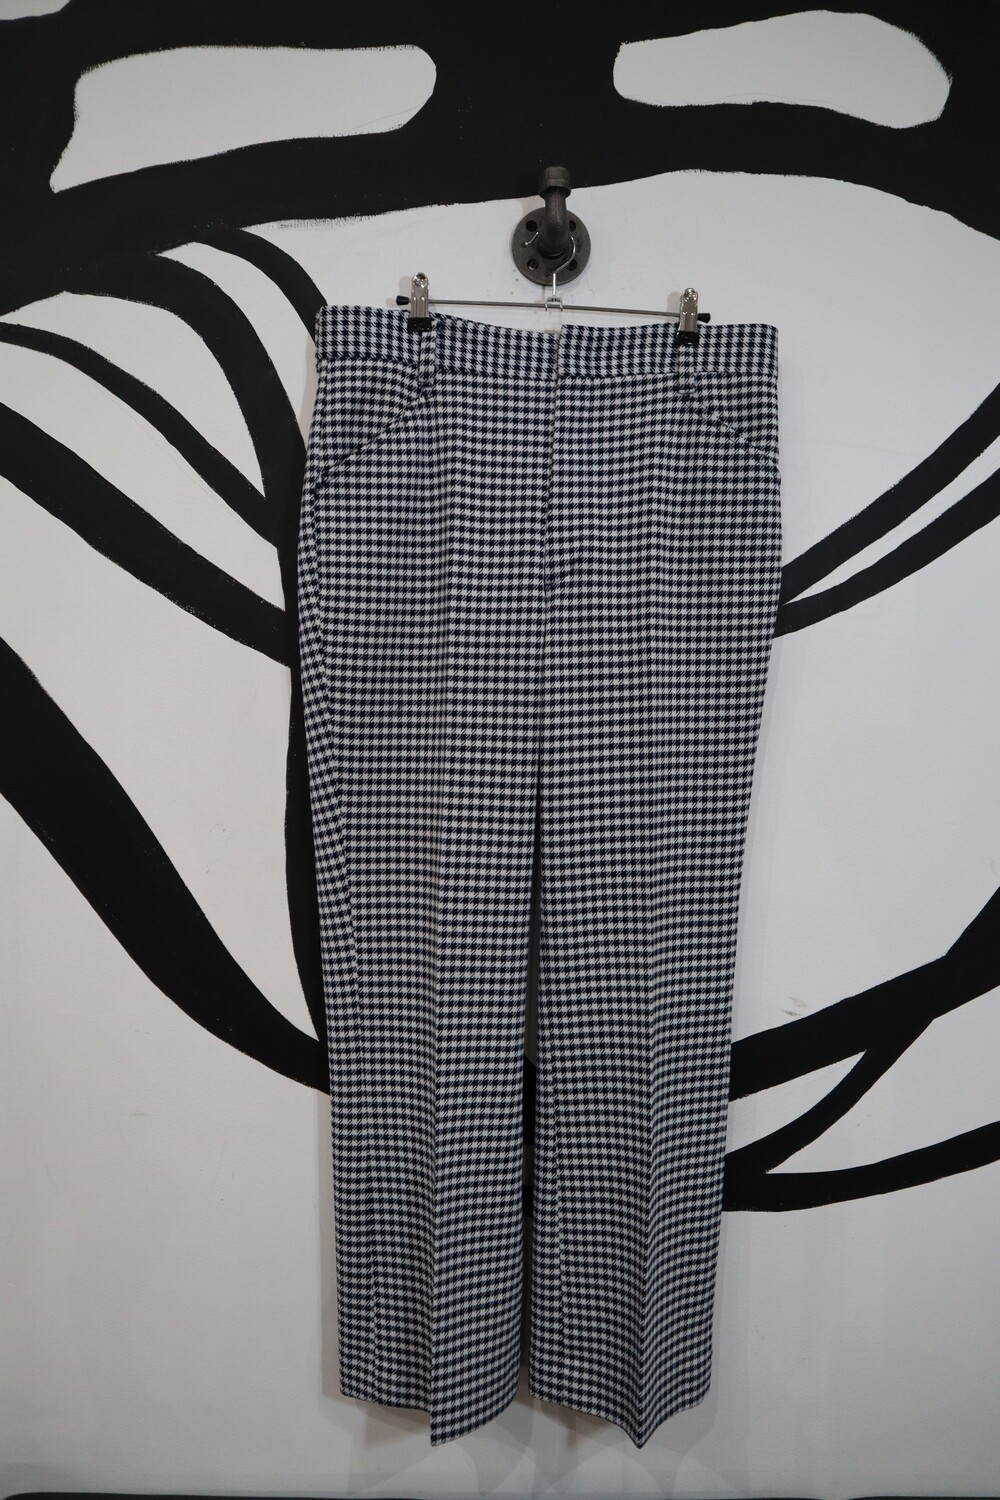 Navy Blue/White Gingham Slacks - Men's 36